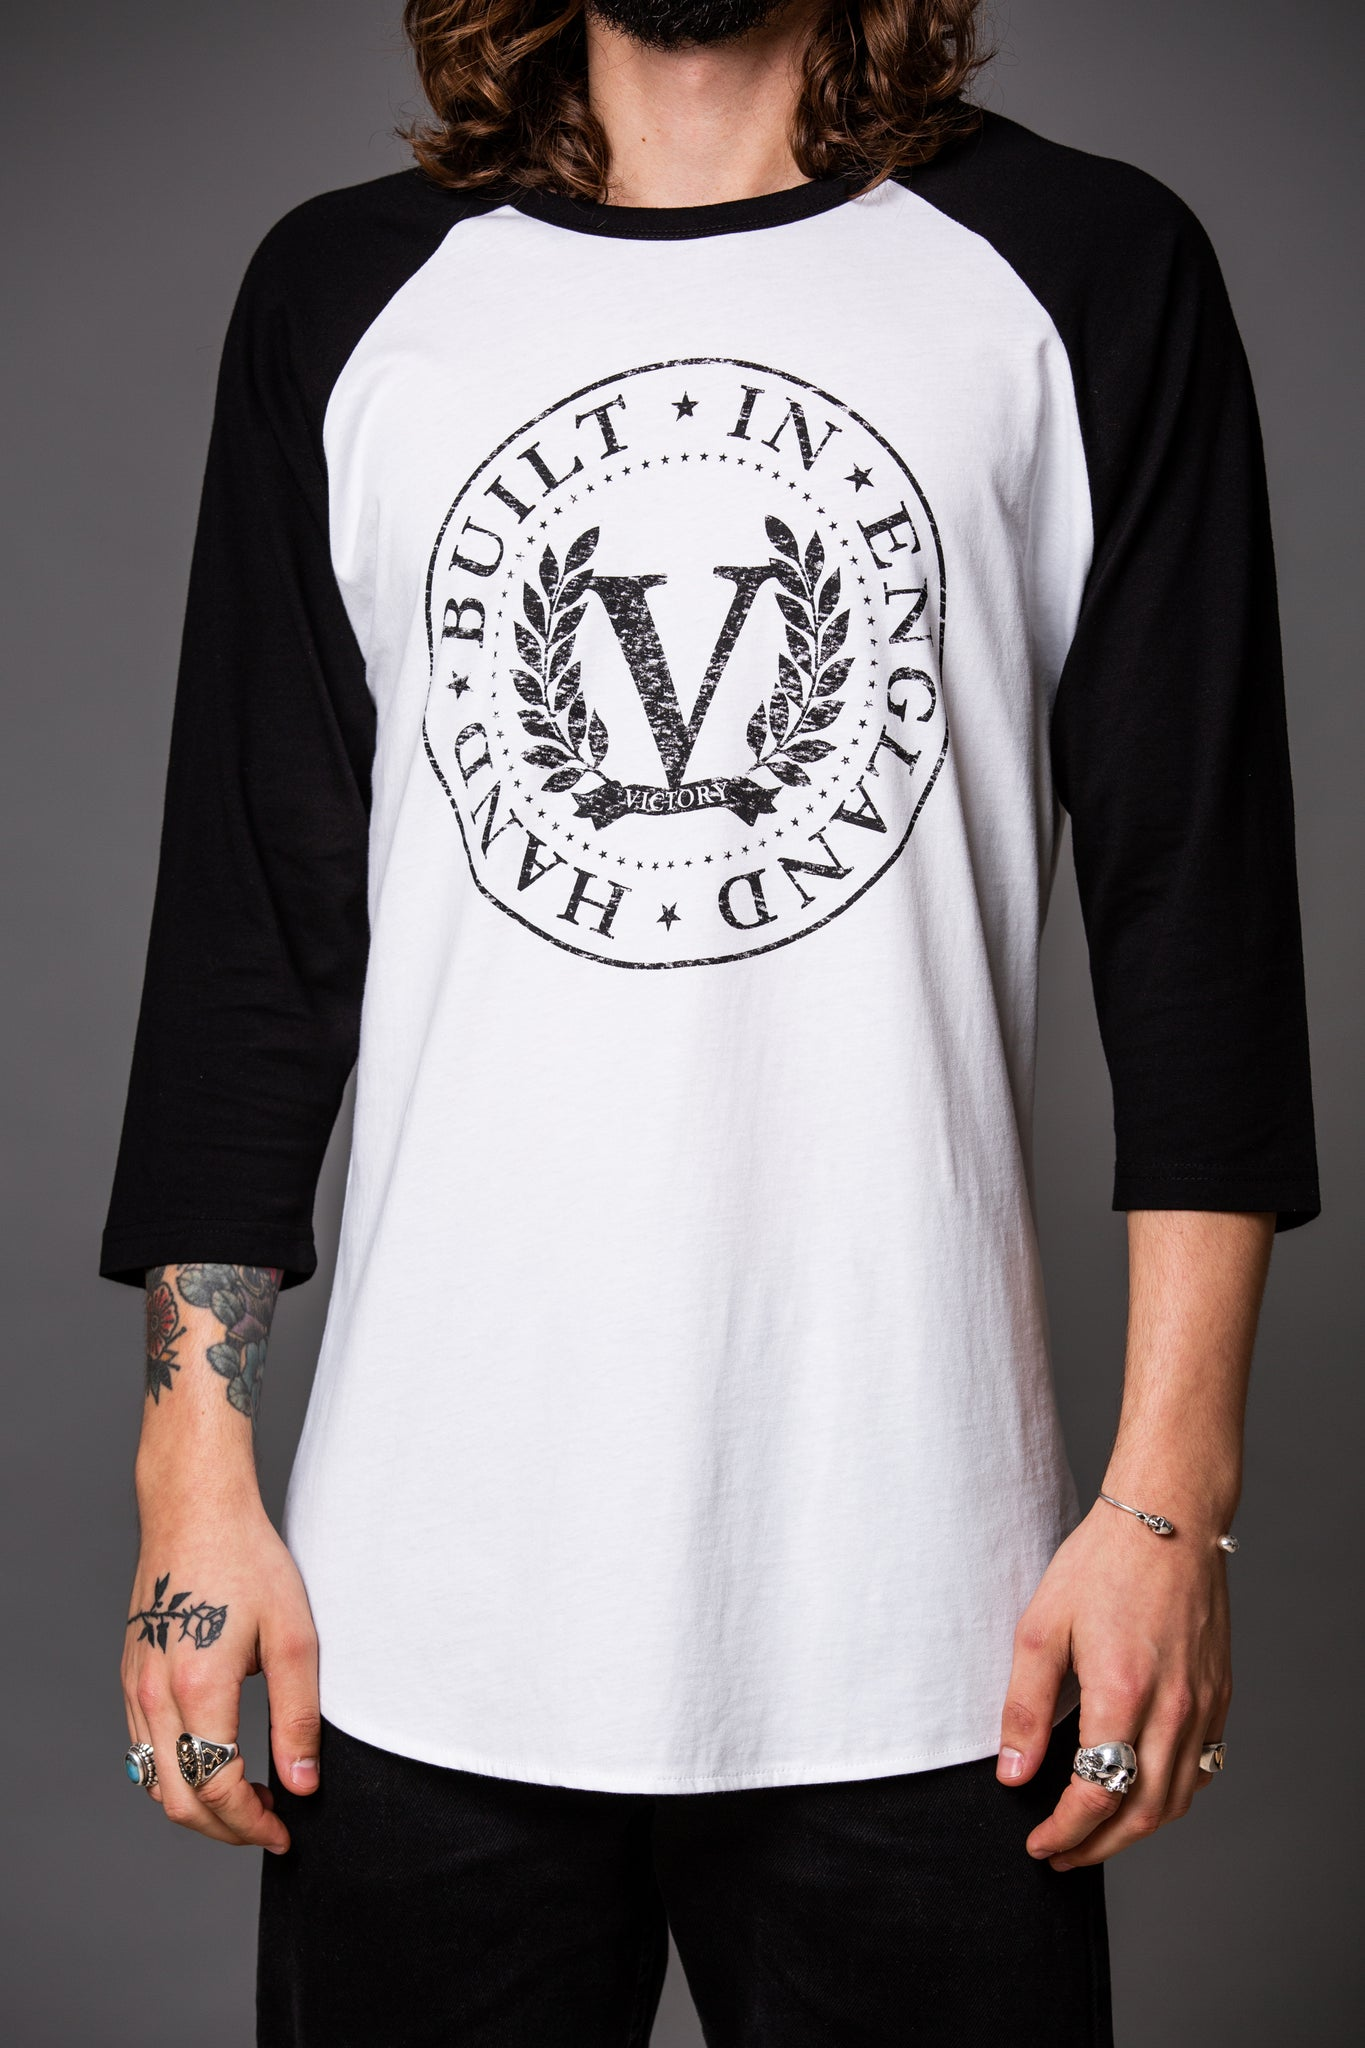 Official Victory Raglan T-shirt - White with Black 3/4 Sleeves and Black 'Stamp' Logo